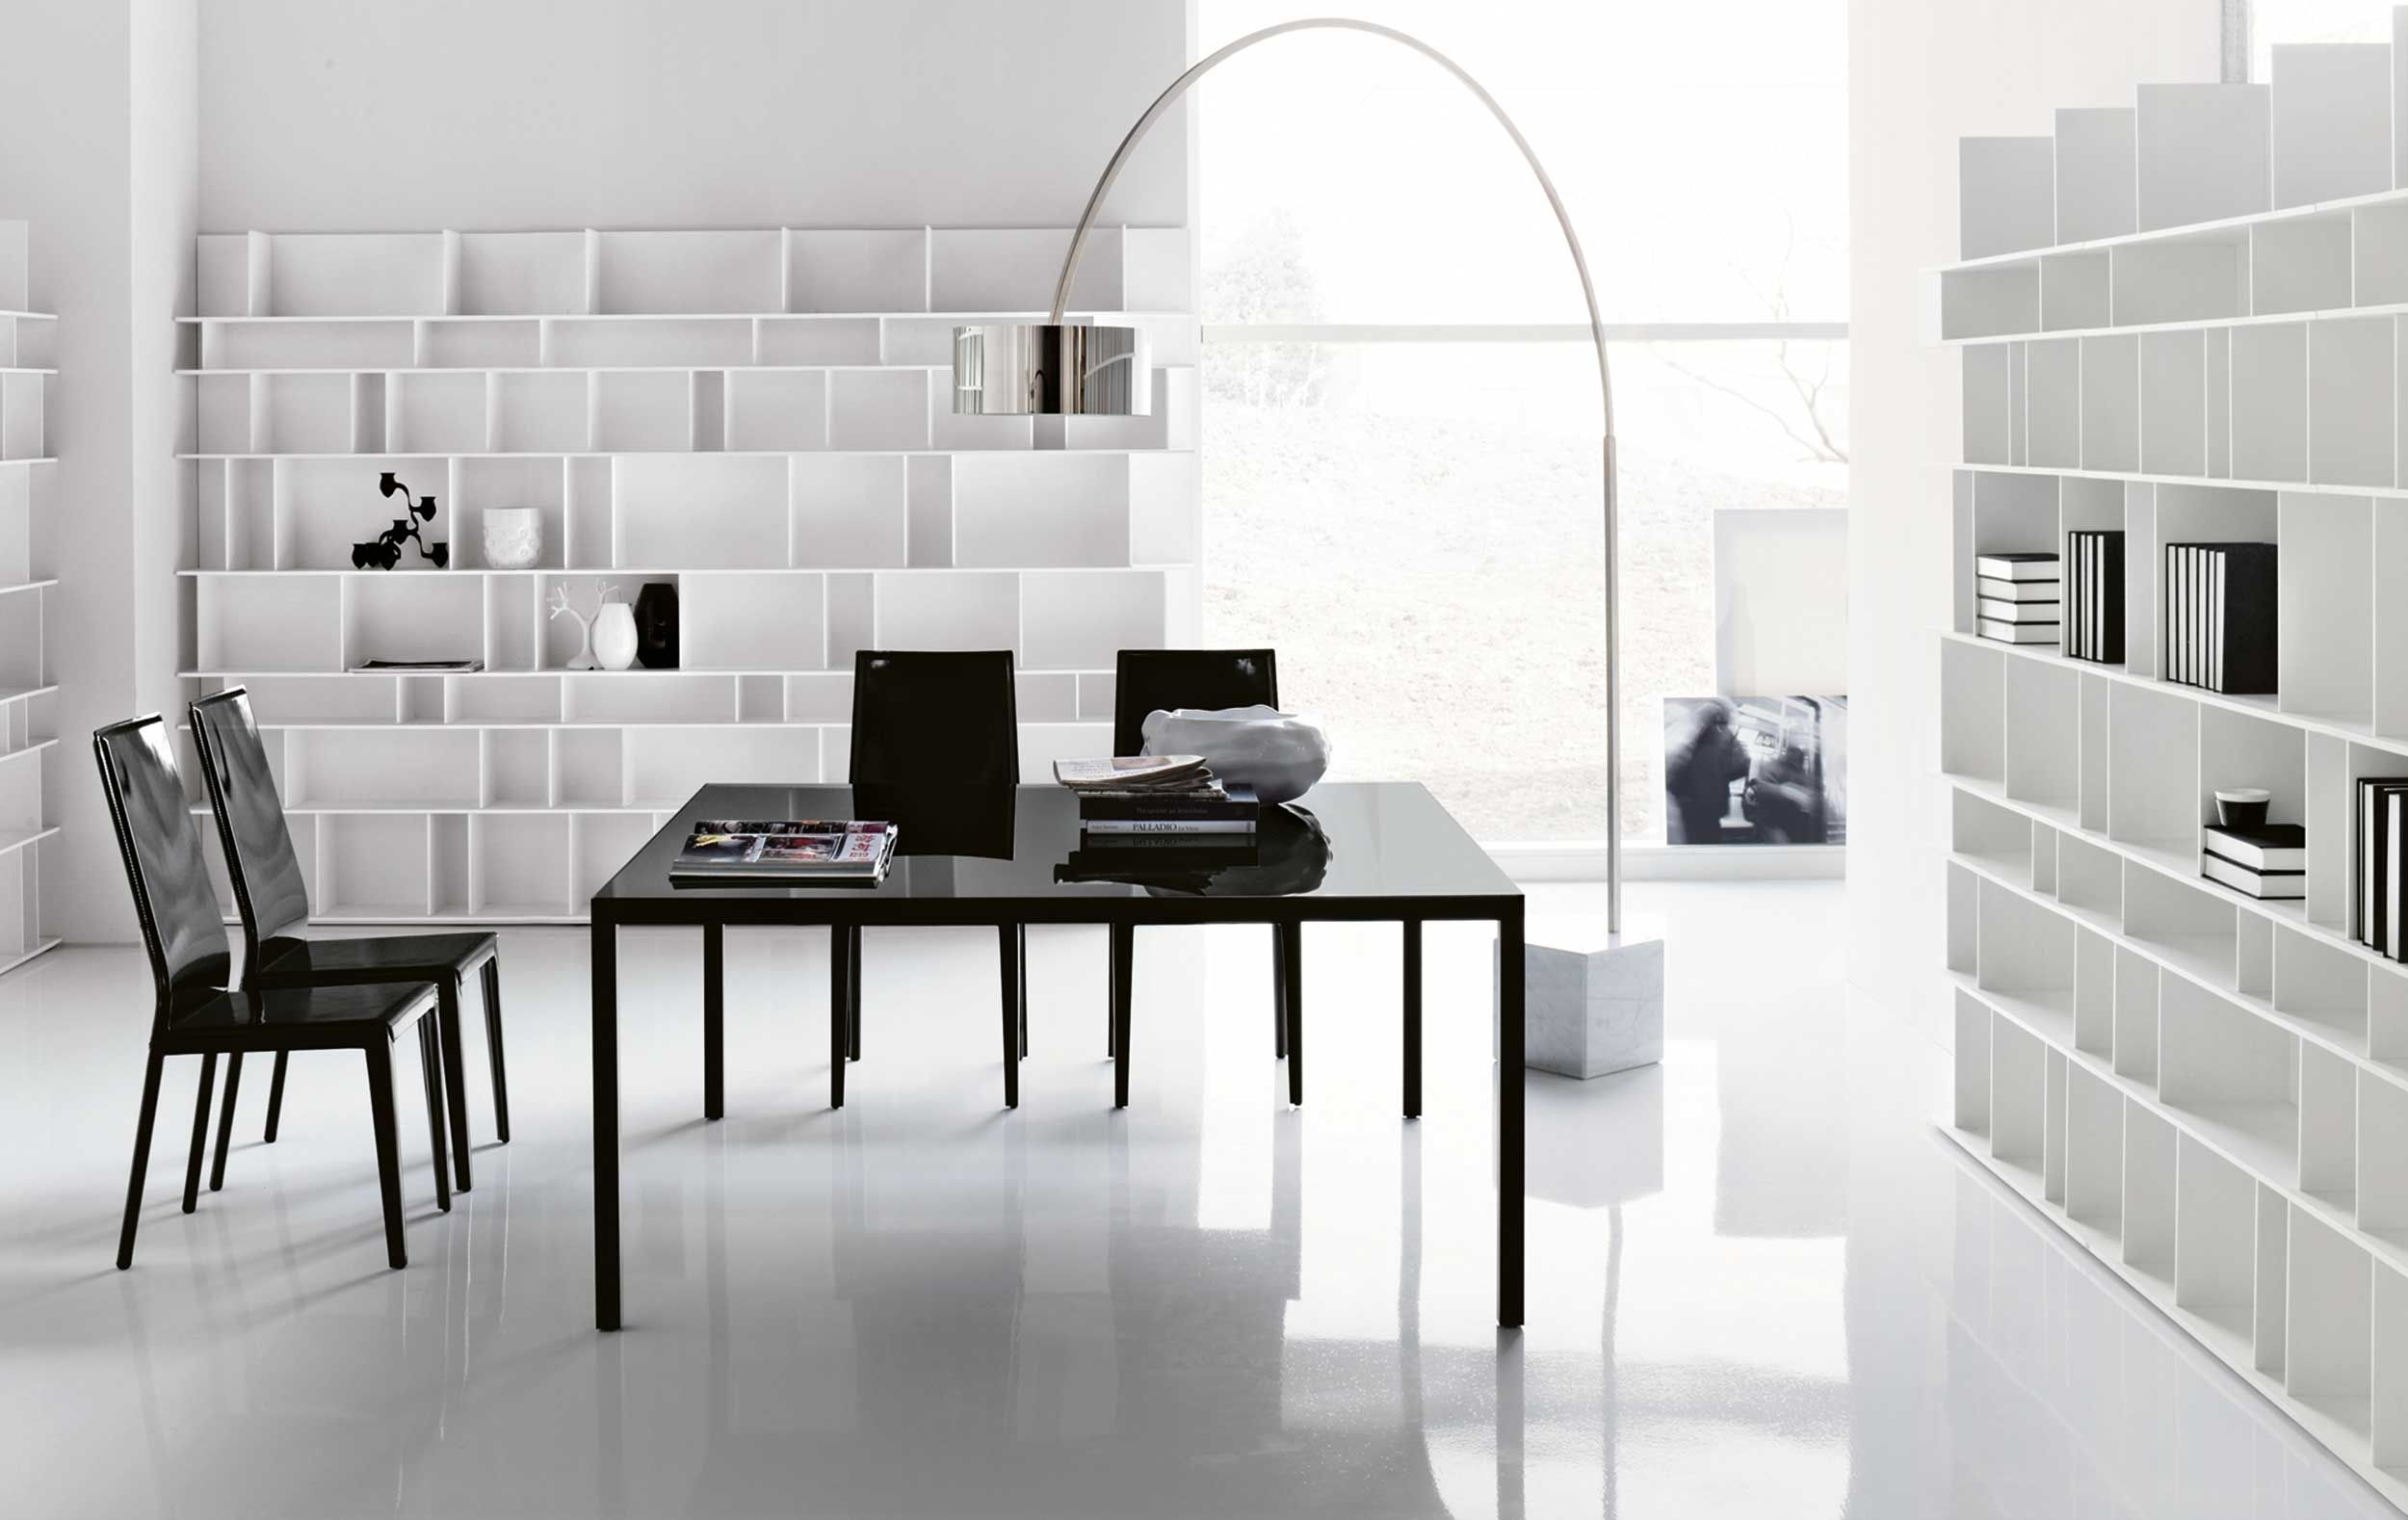 Groovy 17 Best Images About Office Designs On Pinterest Home Office Largest Home Design Picture Inspirations Pitcheantrous